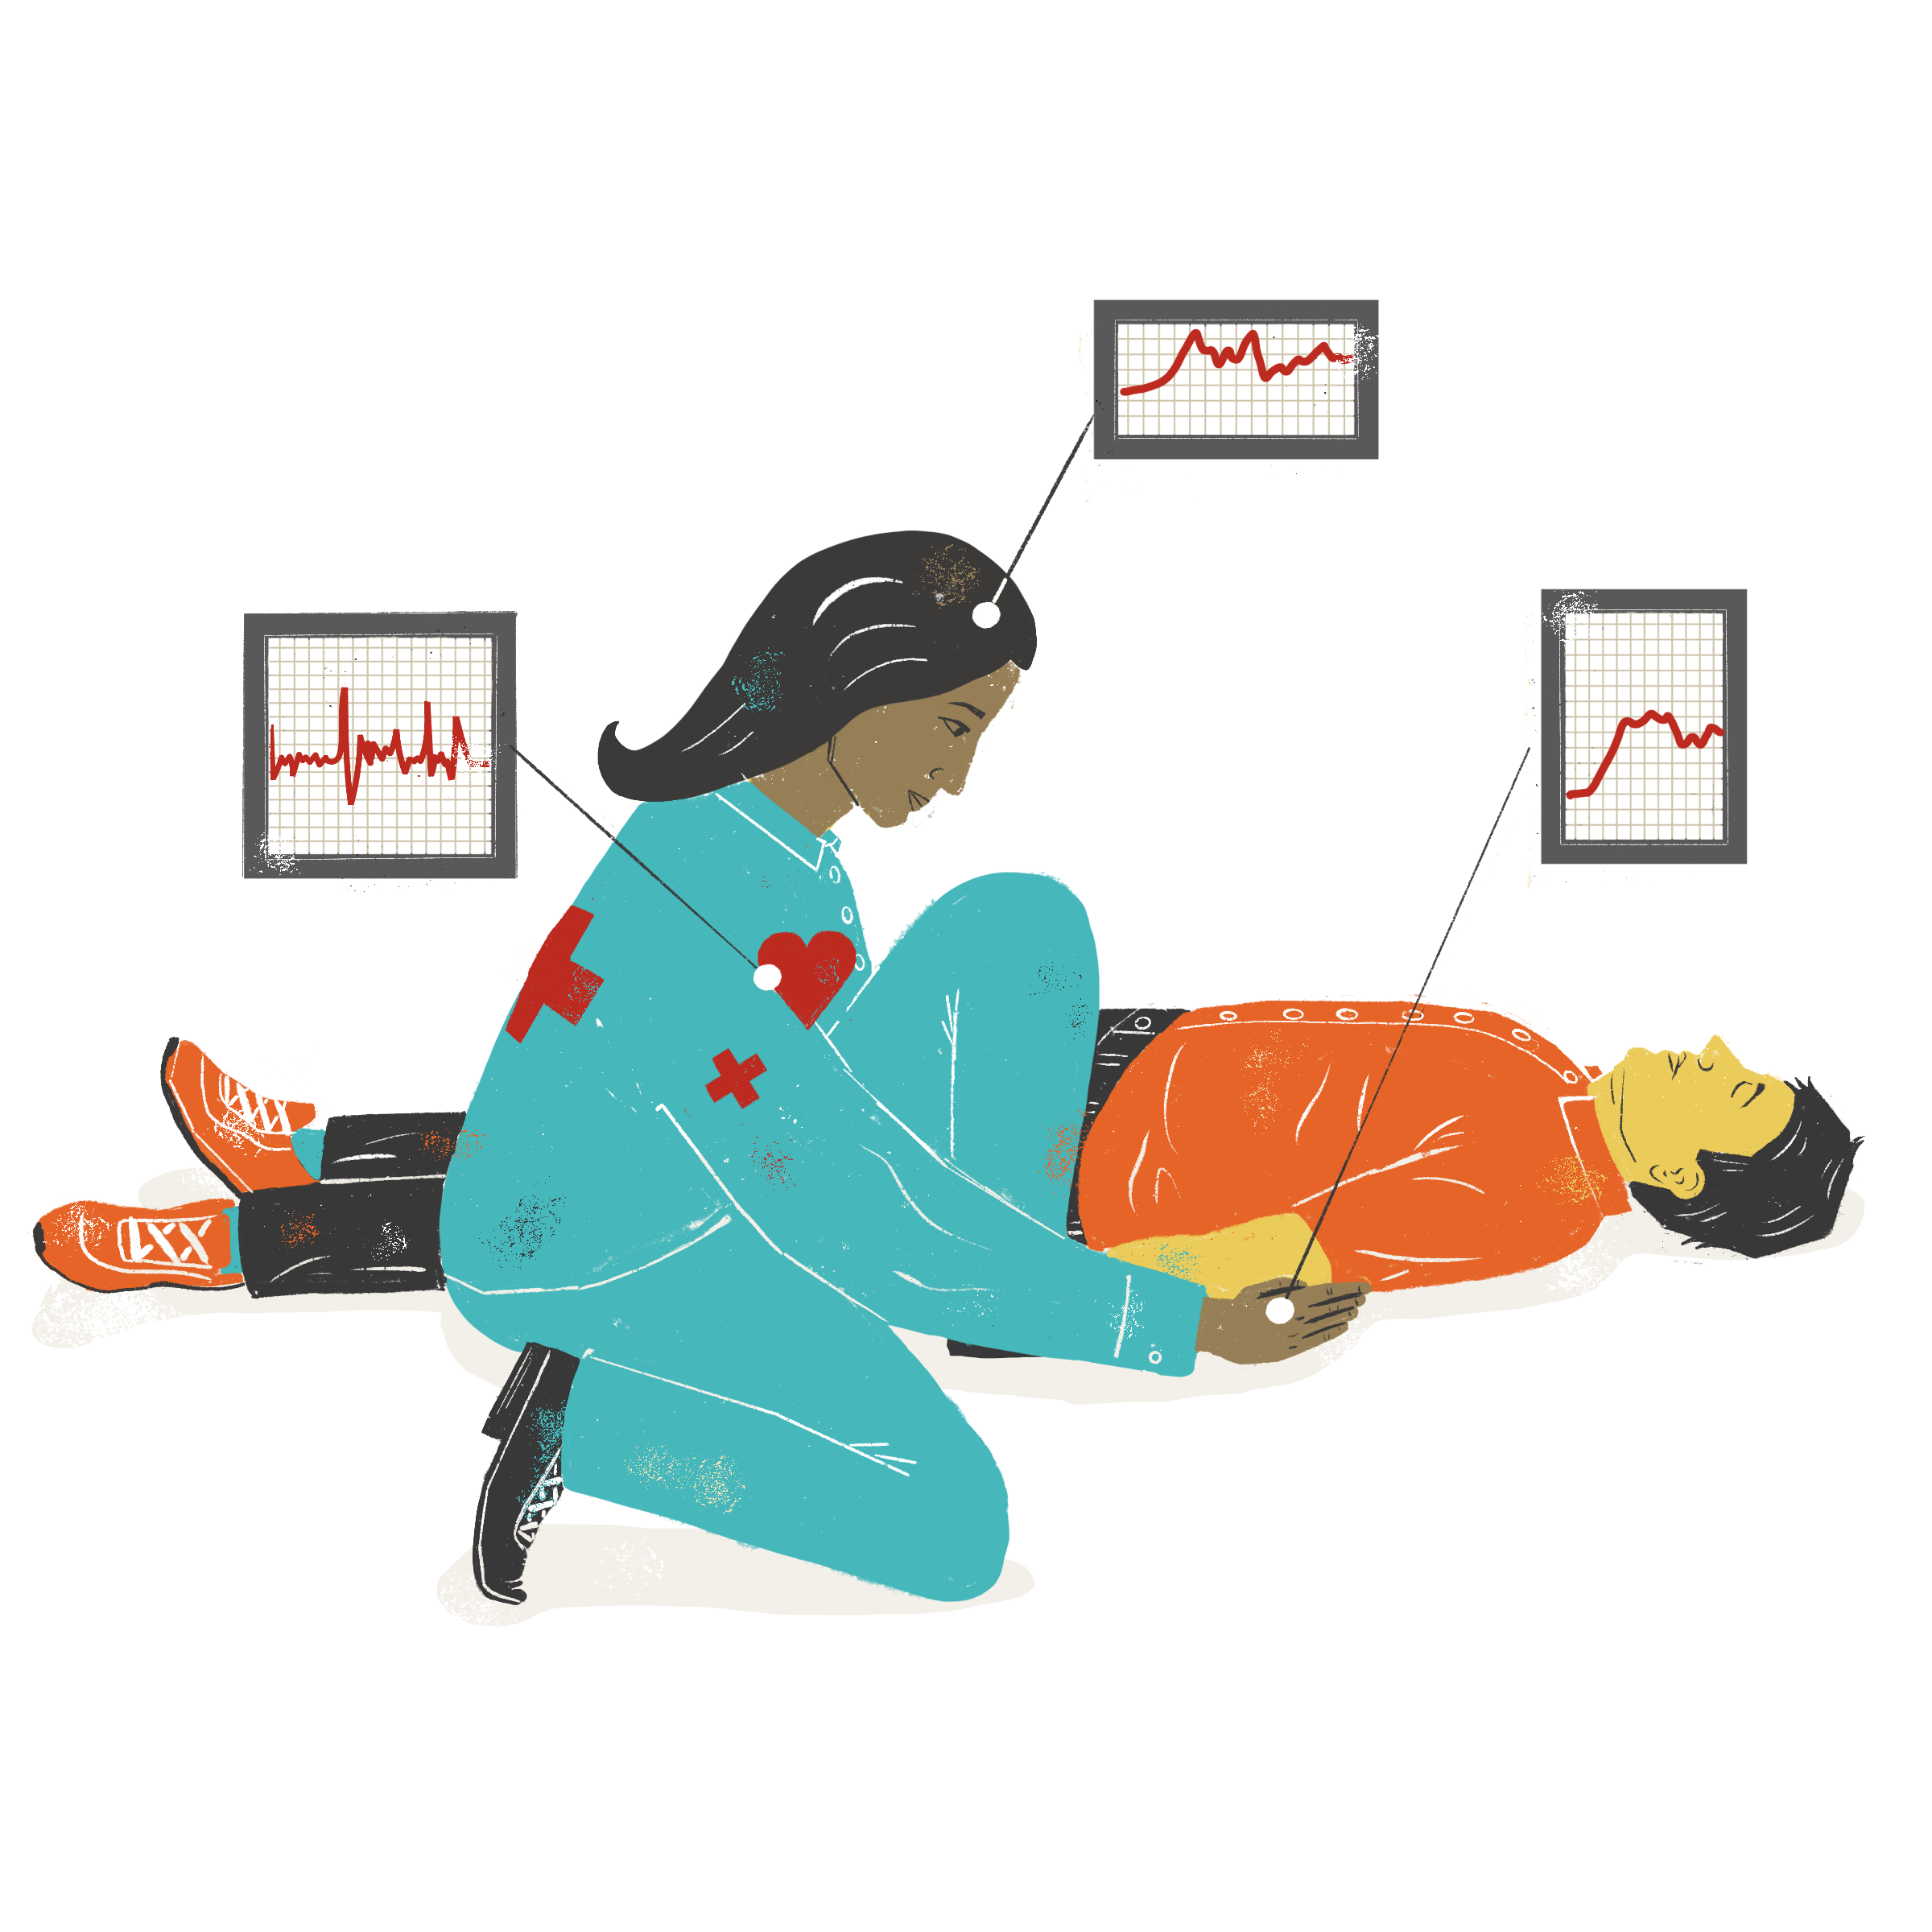 monitoring biological responses in EMTs to assist them in developing coping strategies